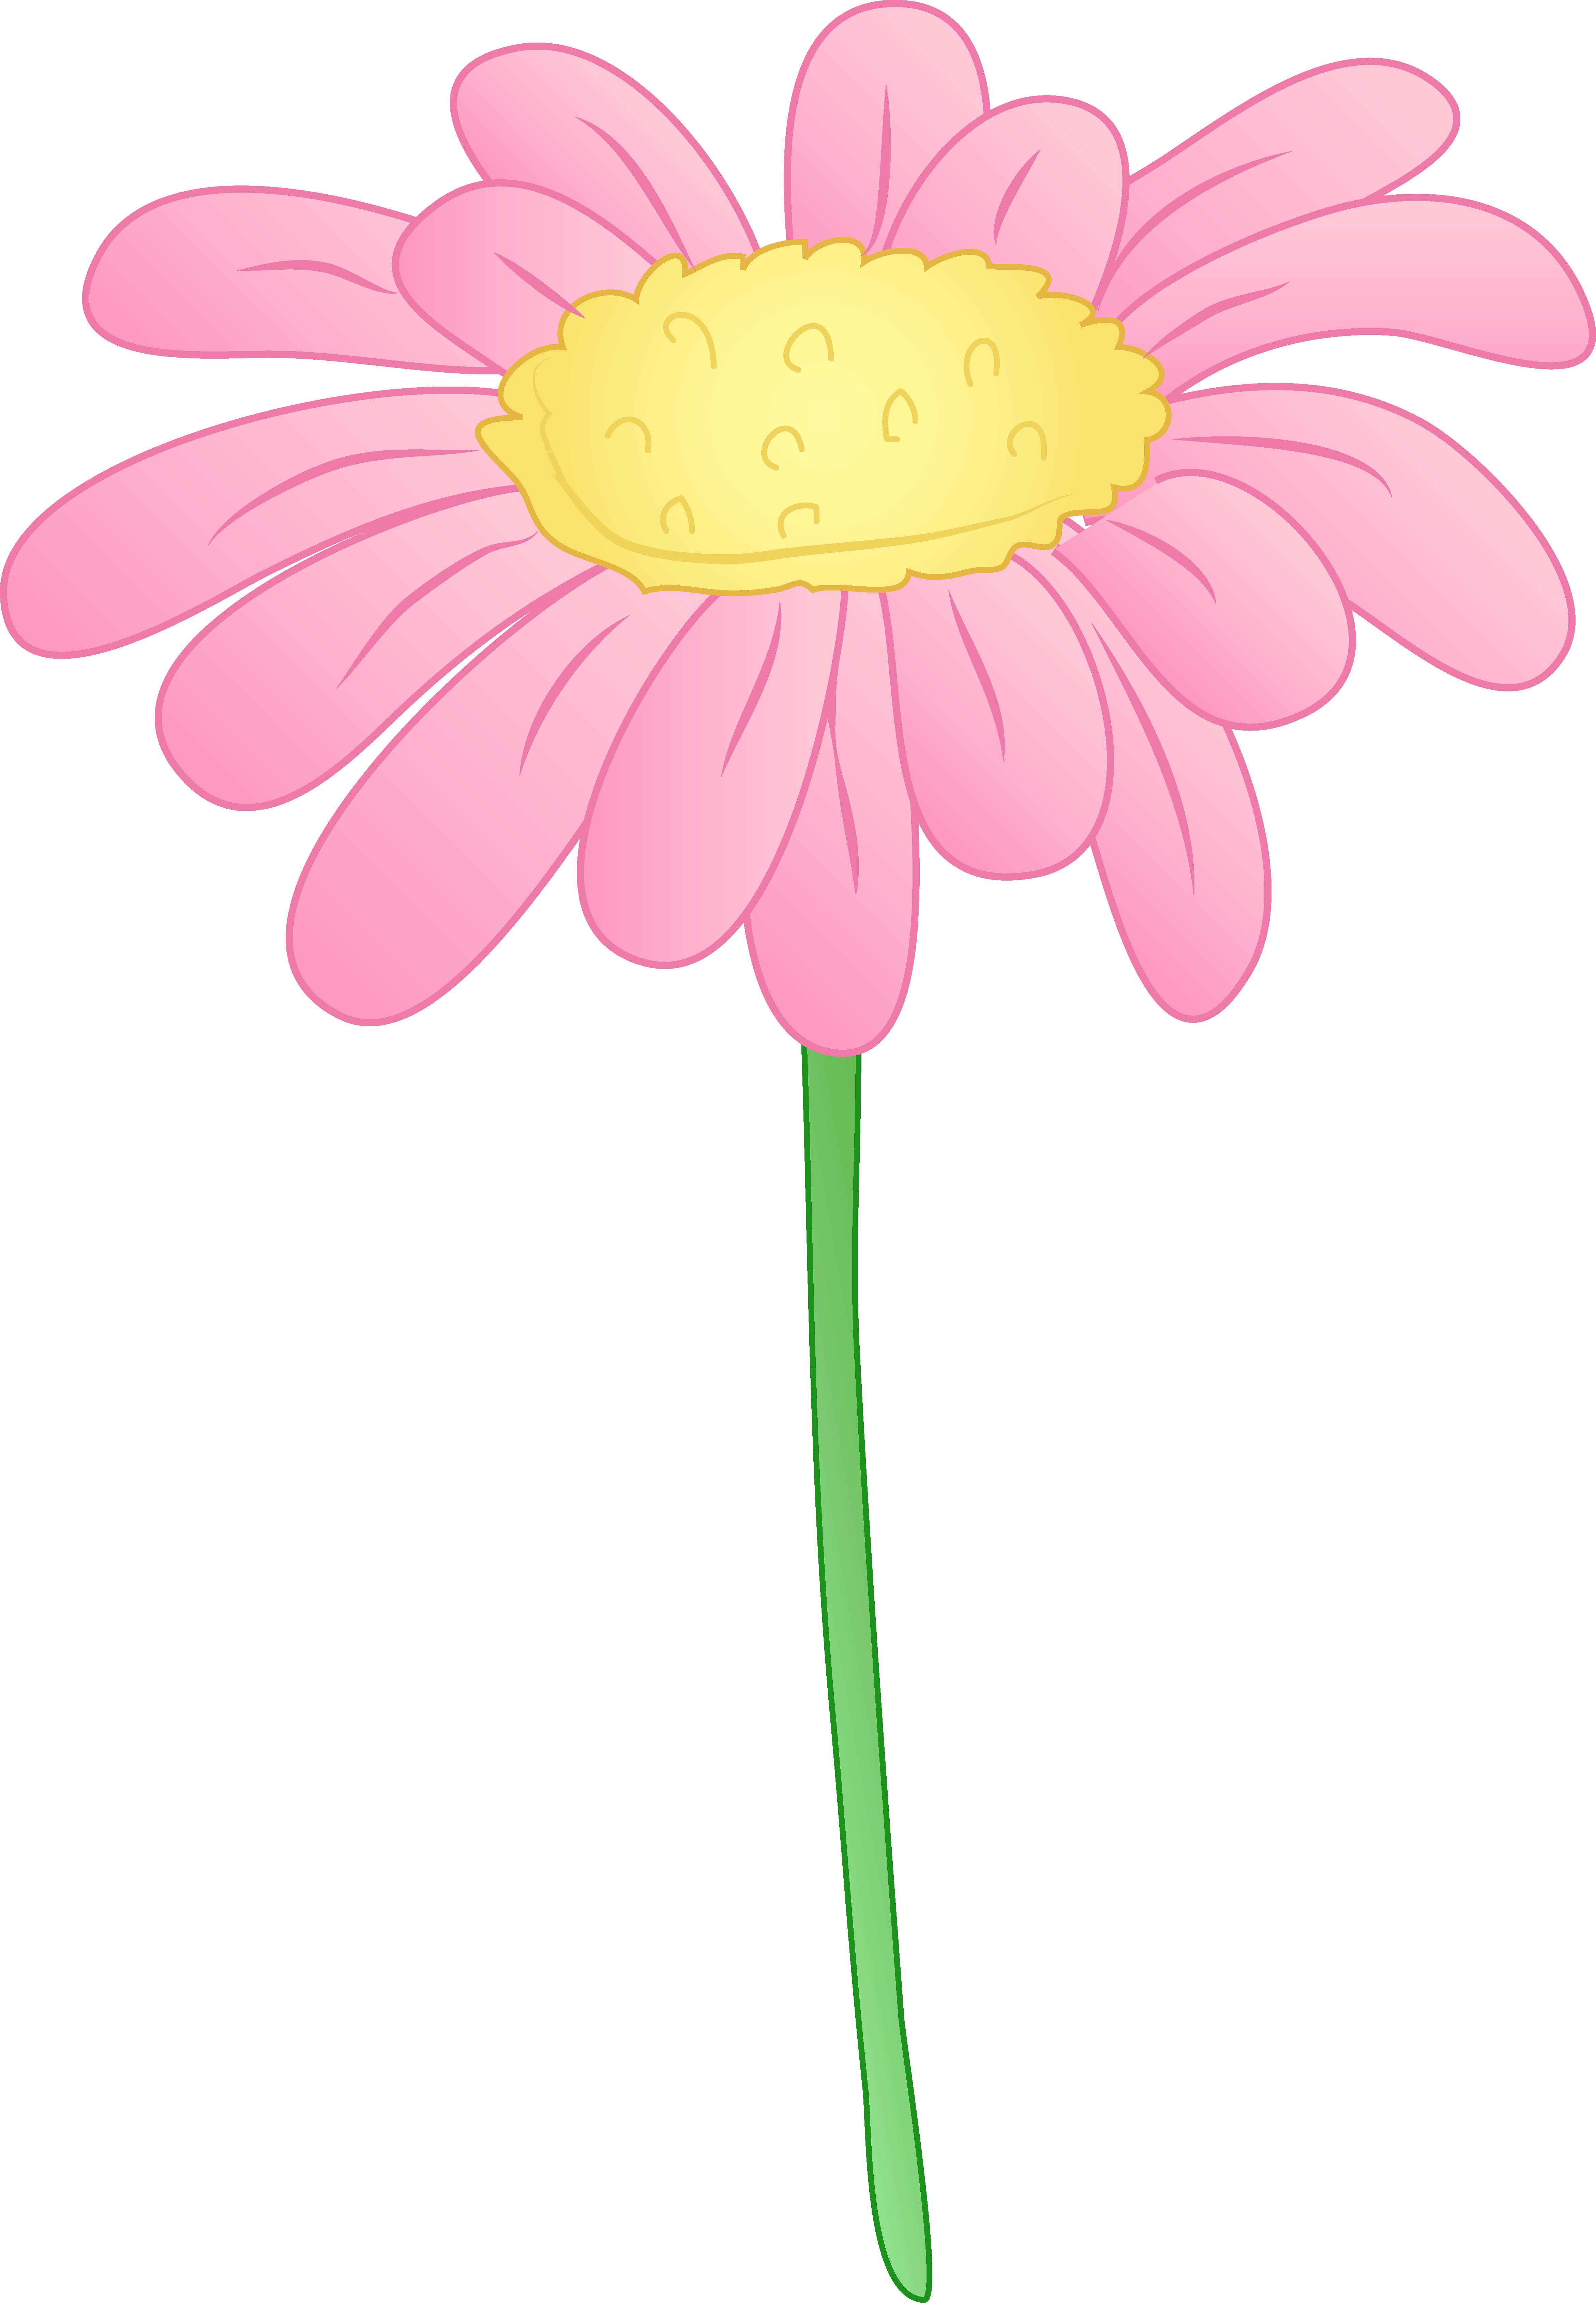 Daisy clipart #3, Download drawings